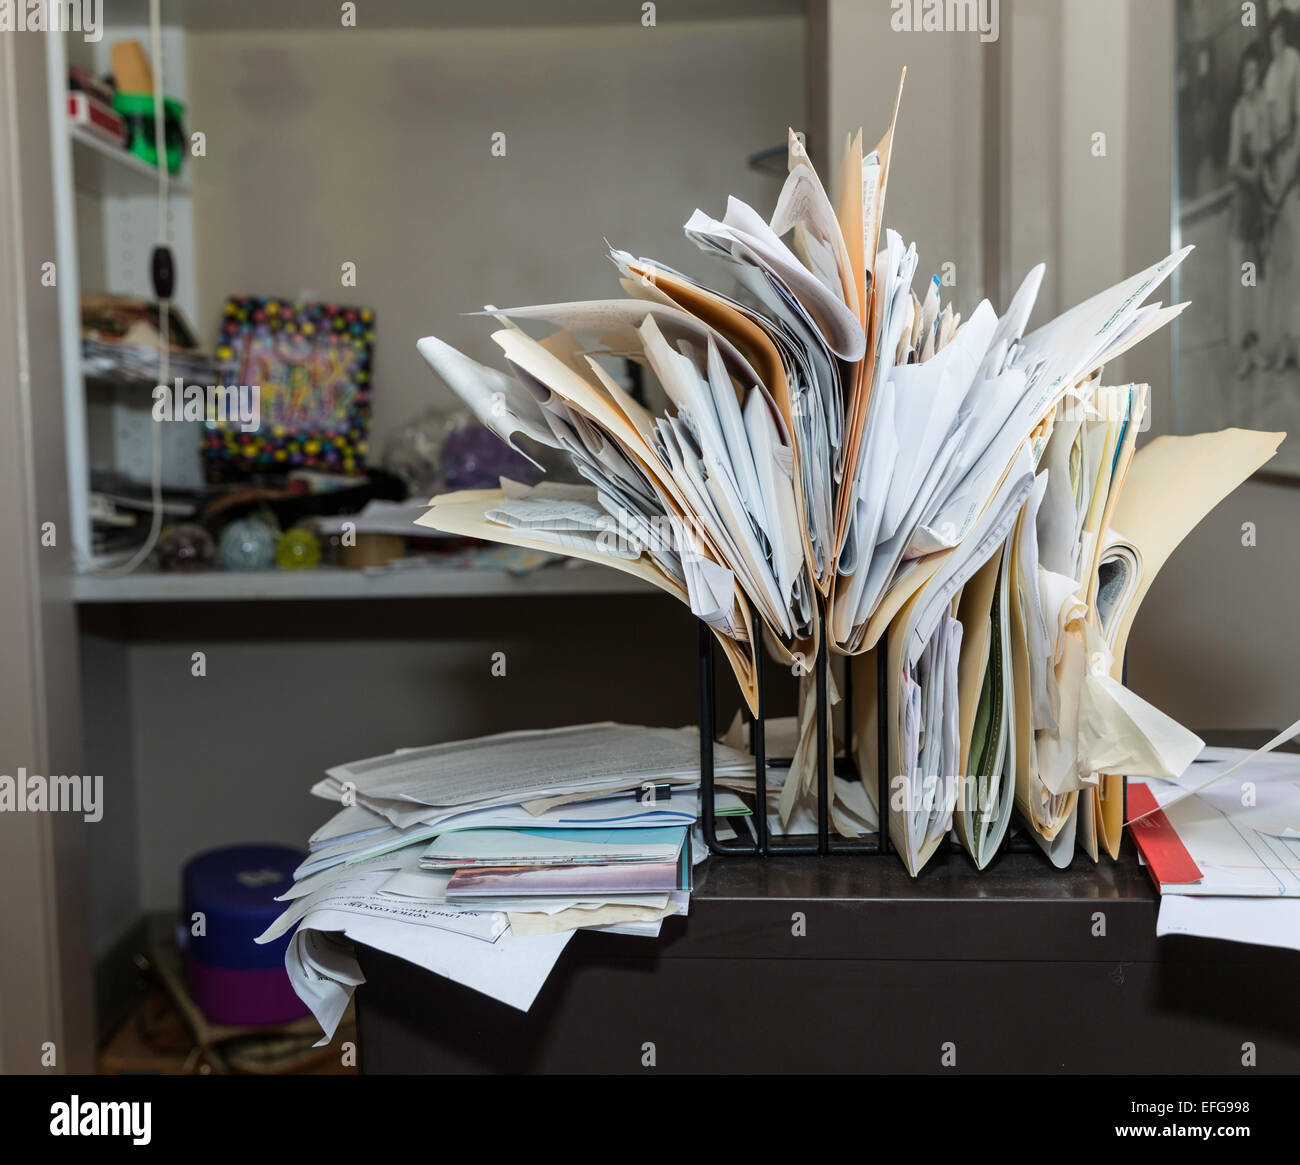 Messy Chaotic Desk And Files Stock Photo 78419860 Alamy